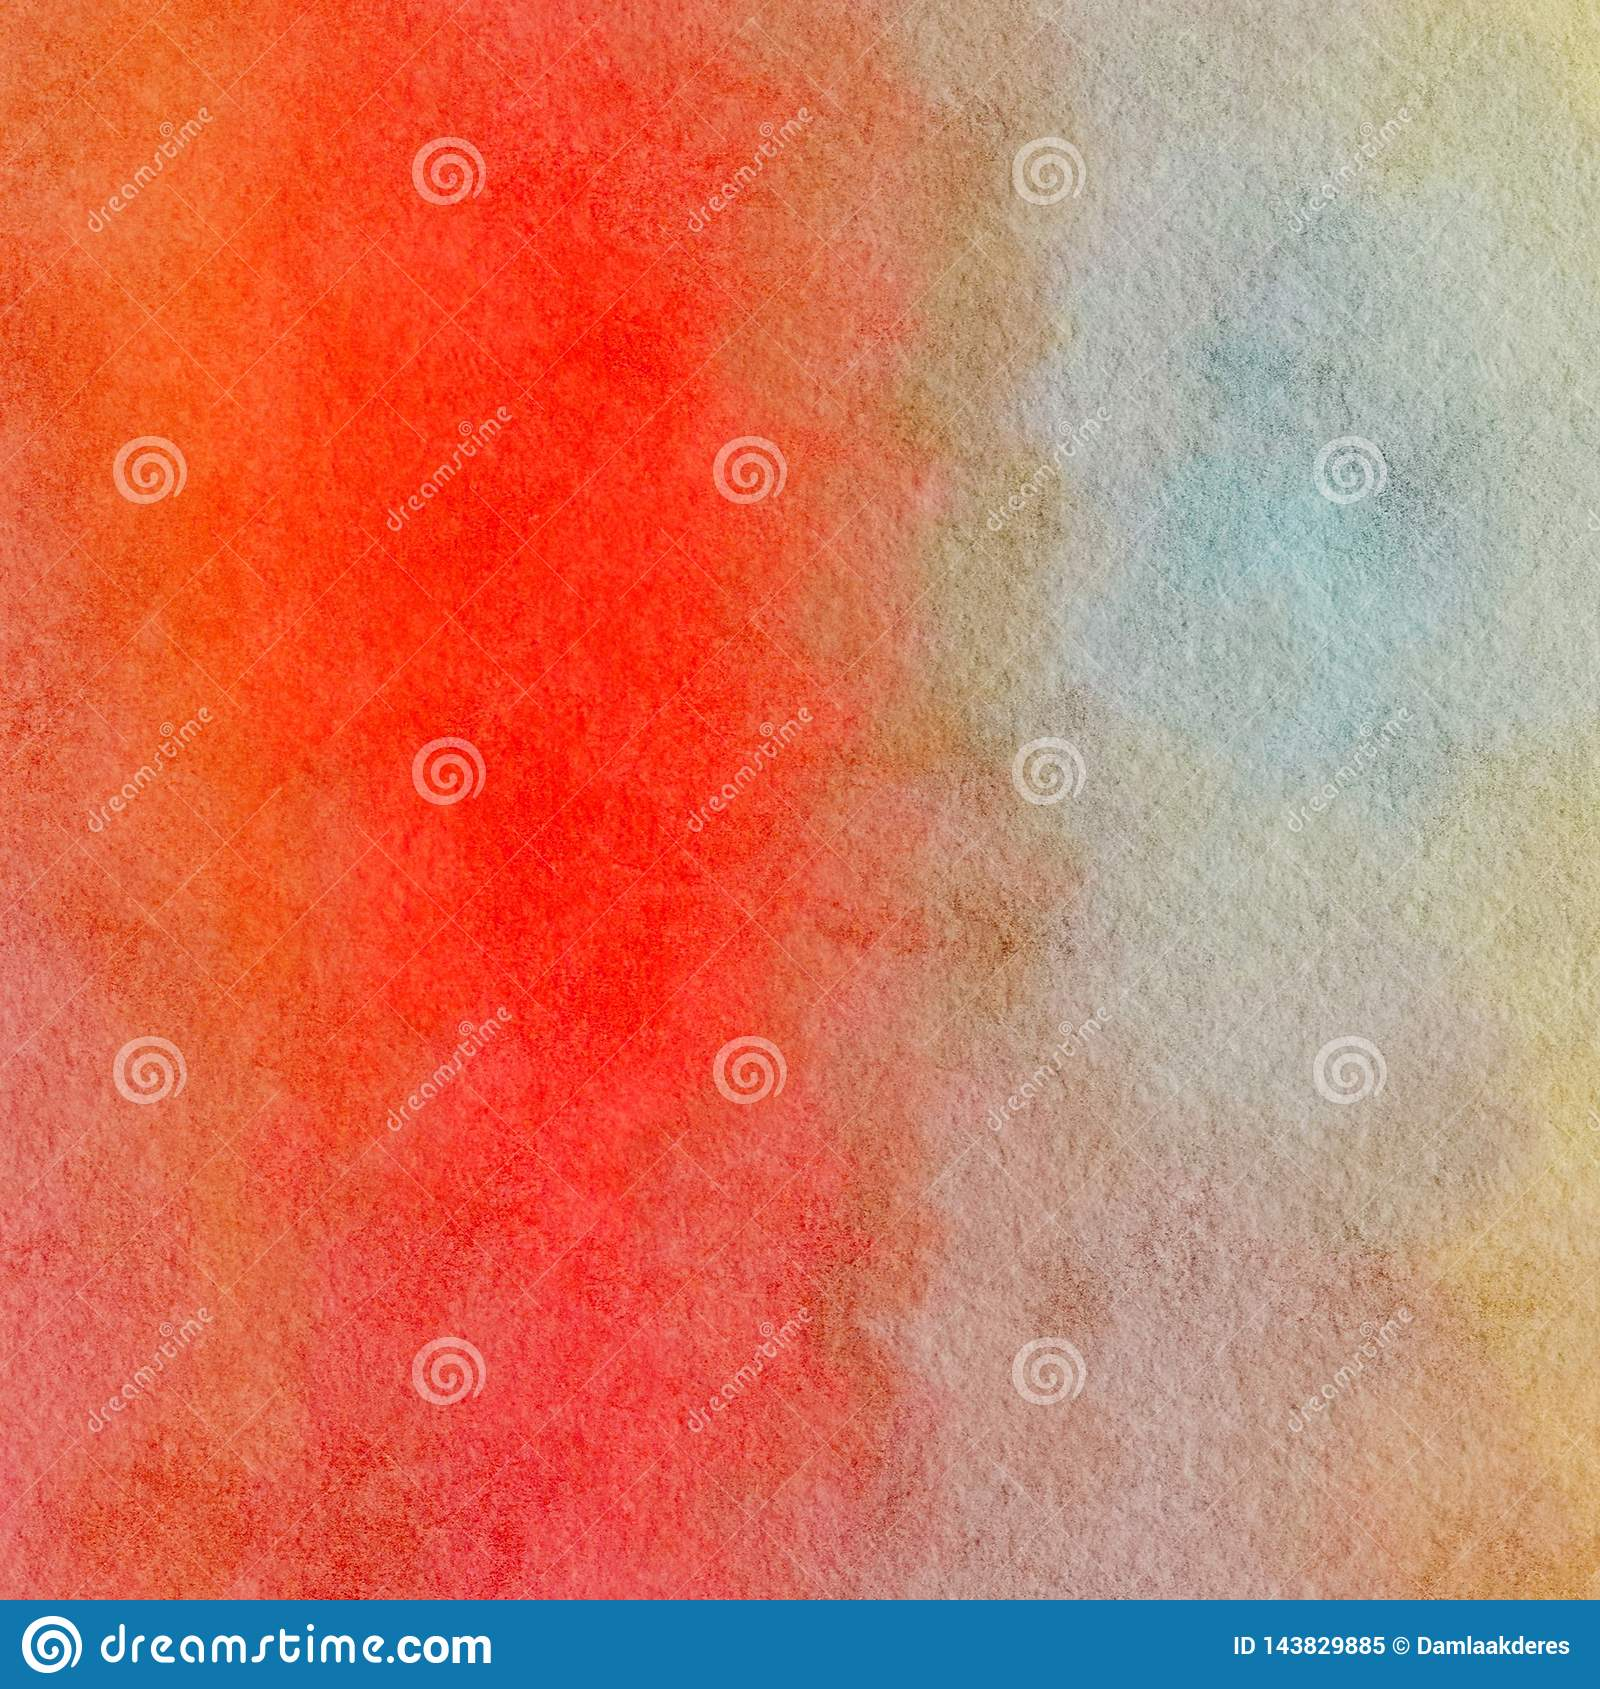 Watercolor Background Watercolor Digital Paper Watercolor Texture Wallpaper For Printing Design Of Cases And Other Surfaces Stock Illustration Illustration Of Covers Print 143829885